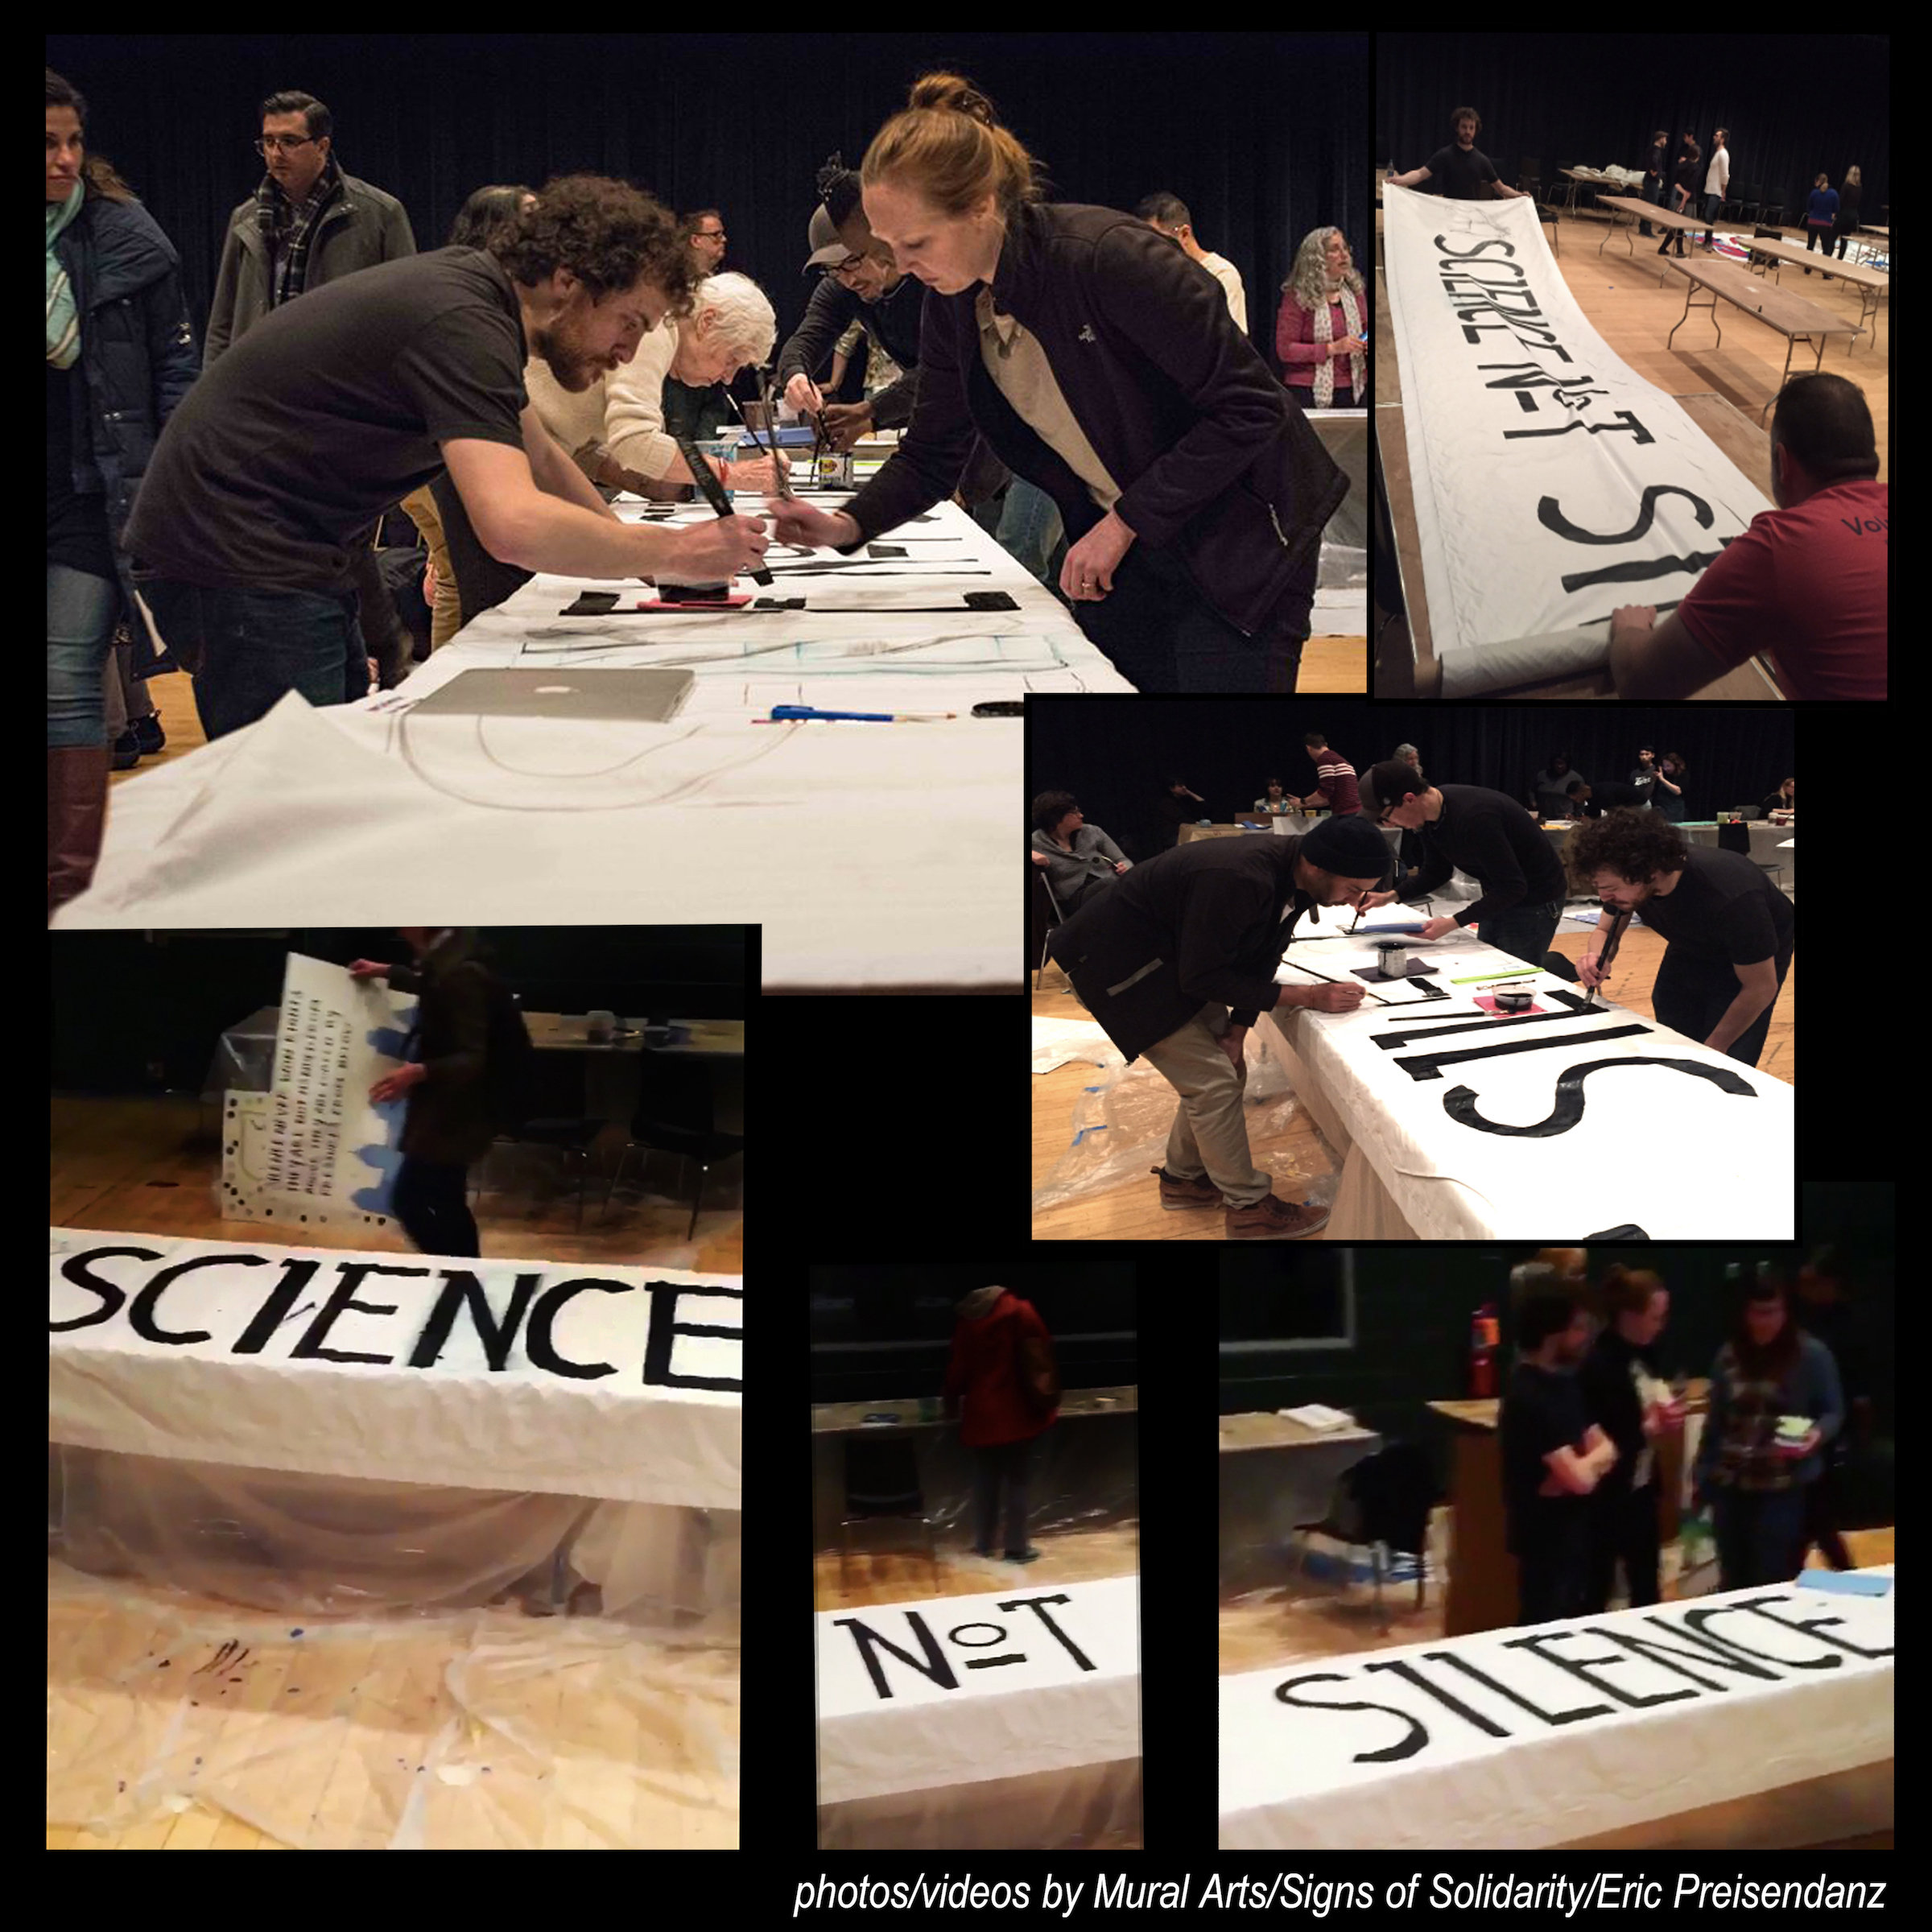 """Science NOT Silence"" images provided by Mural Arts/Signs of Solidarity/Eric Preisendanz"